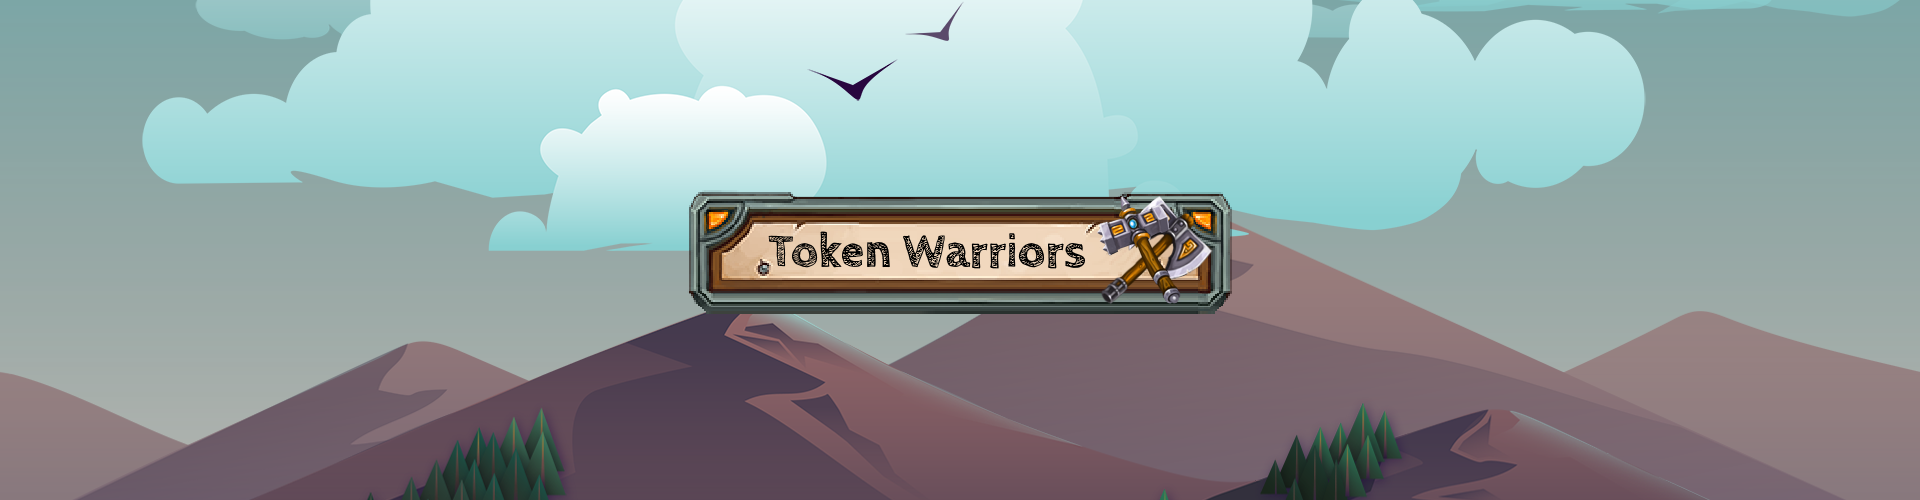 TokenWarriors